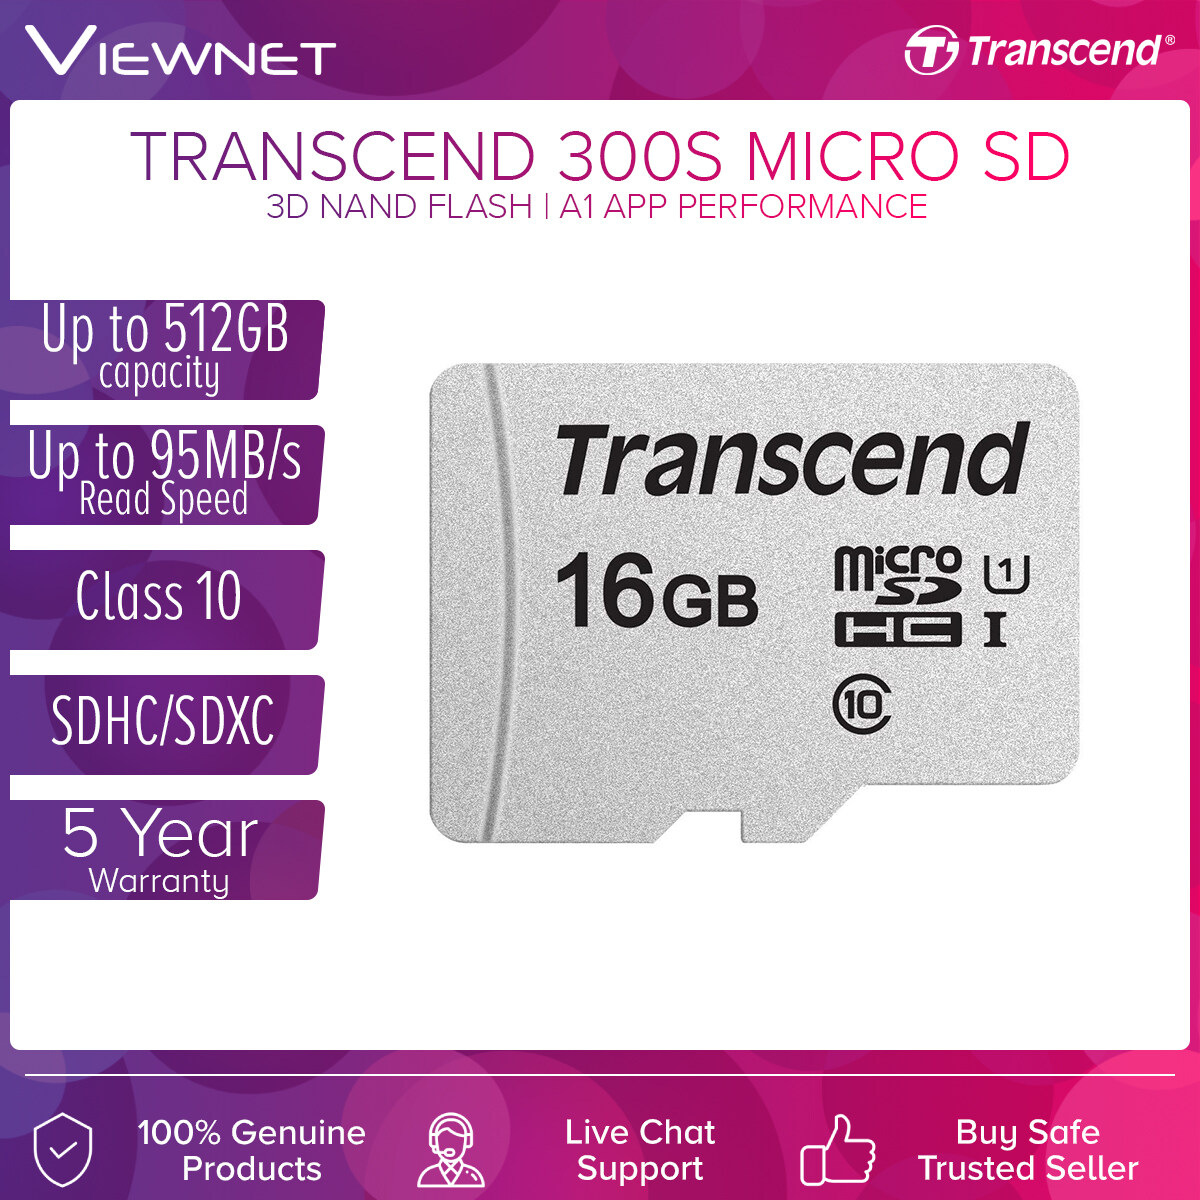 Transcend 300S MicroSD Memory Card with A1 App Performance, Up To 95mb/s Read, Ideal for Smartphone, Tablets and Digital Camera